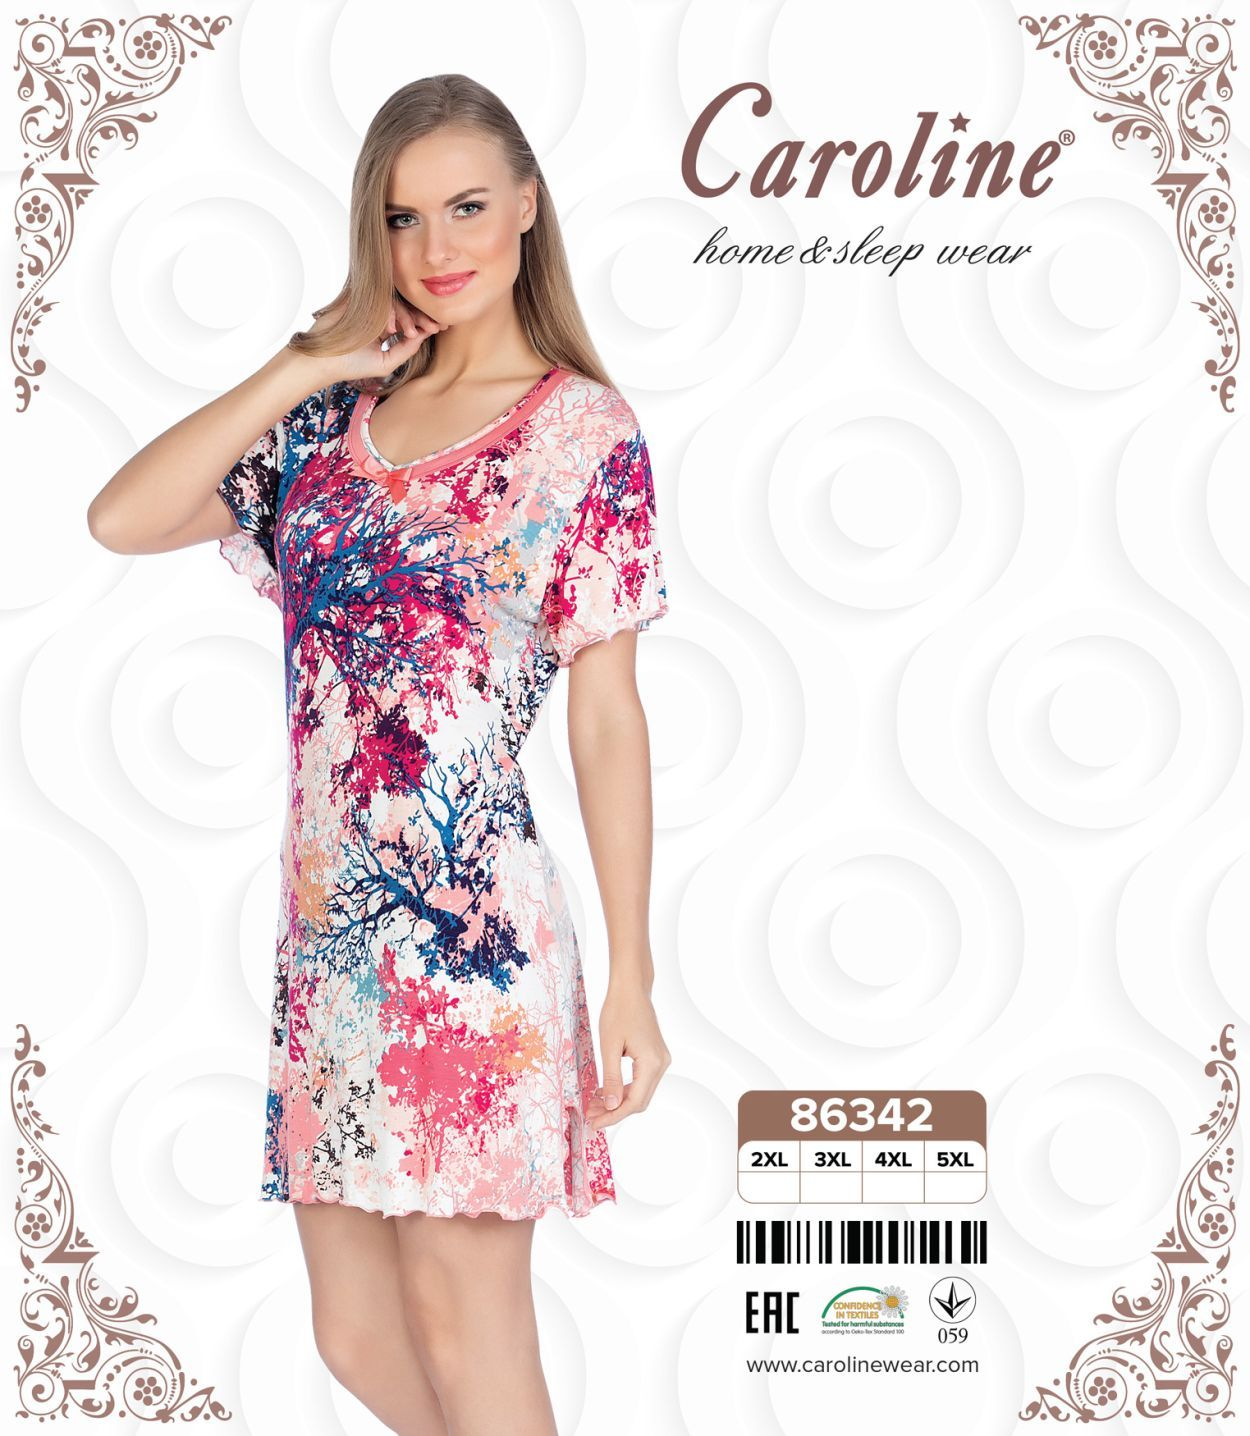 Caroline nightgown 2xl 5xl 17 women 39 s home wear - Design your own mobile home online ...